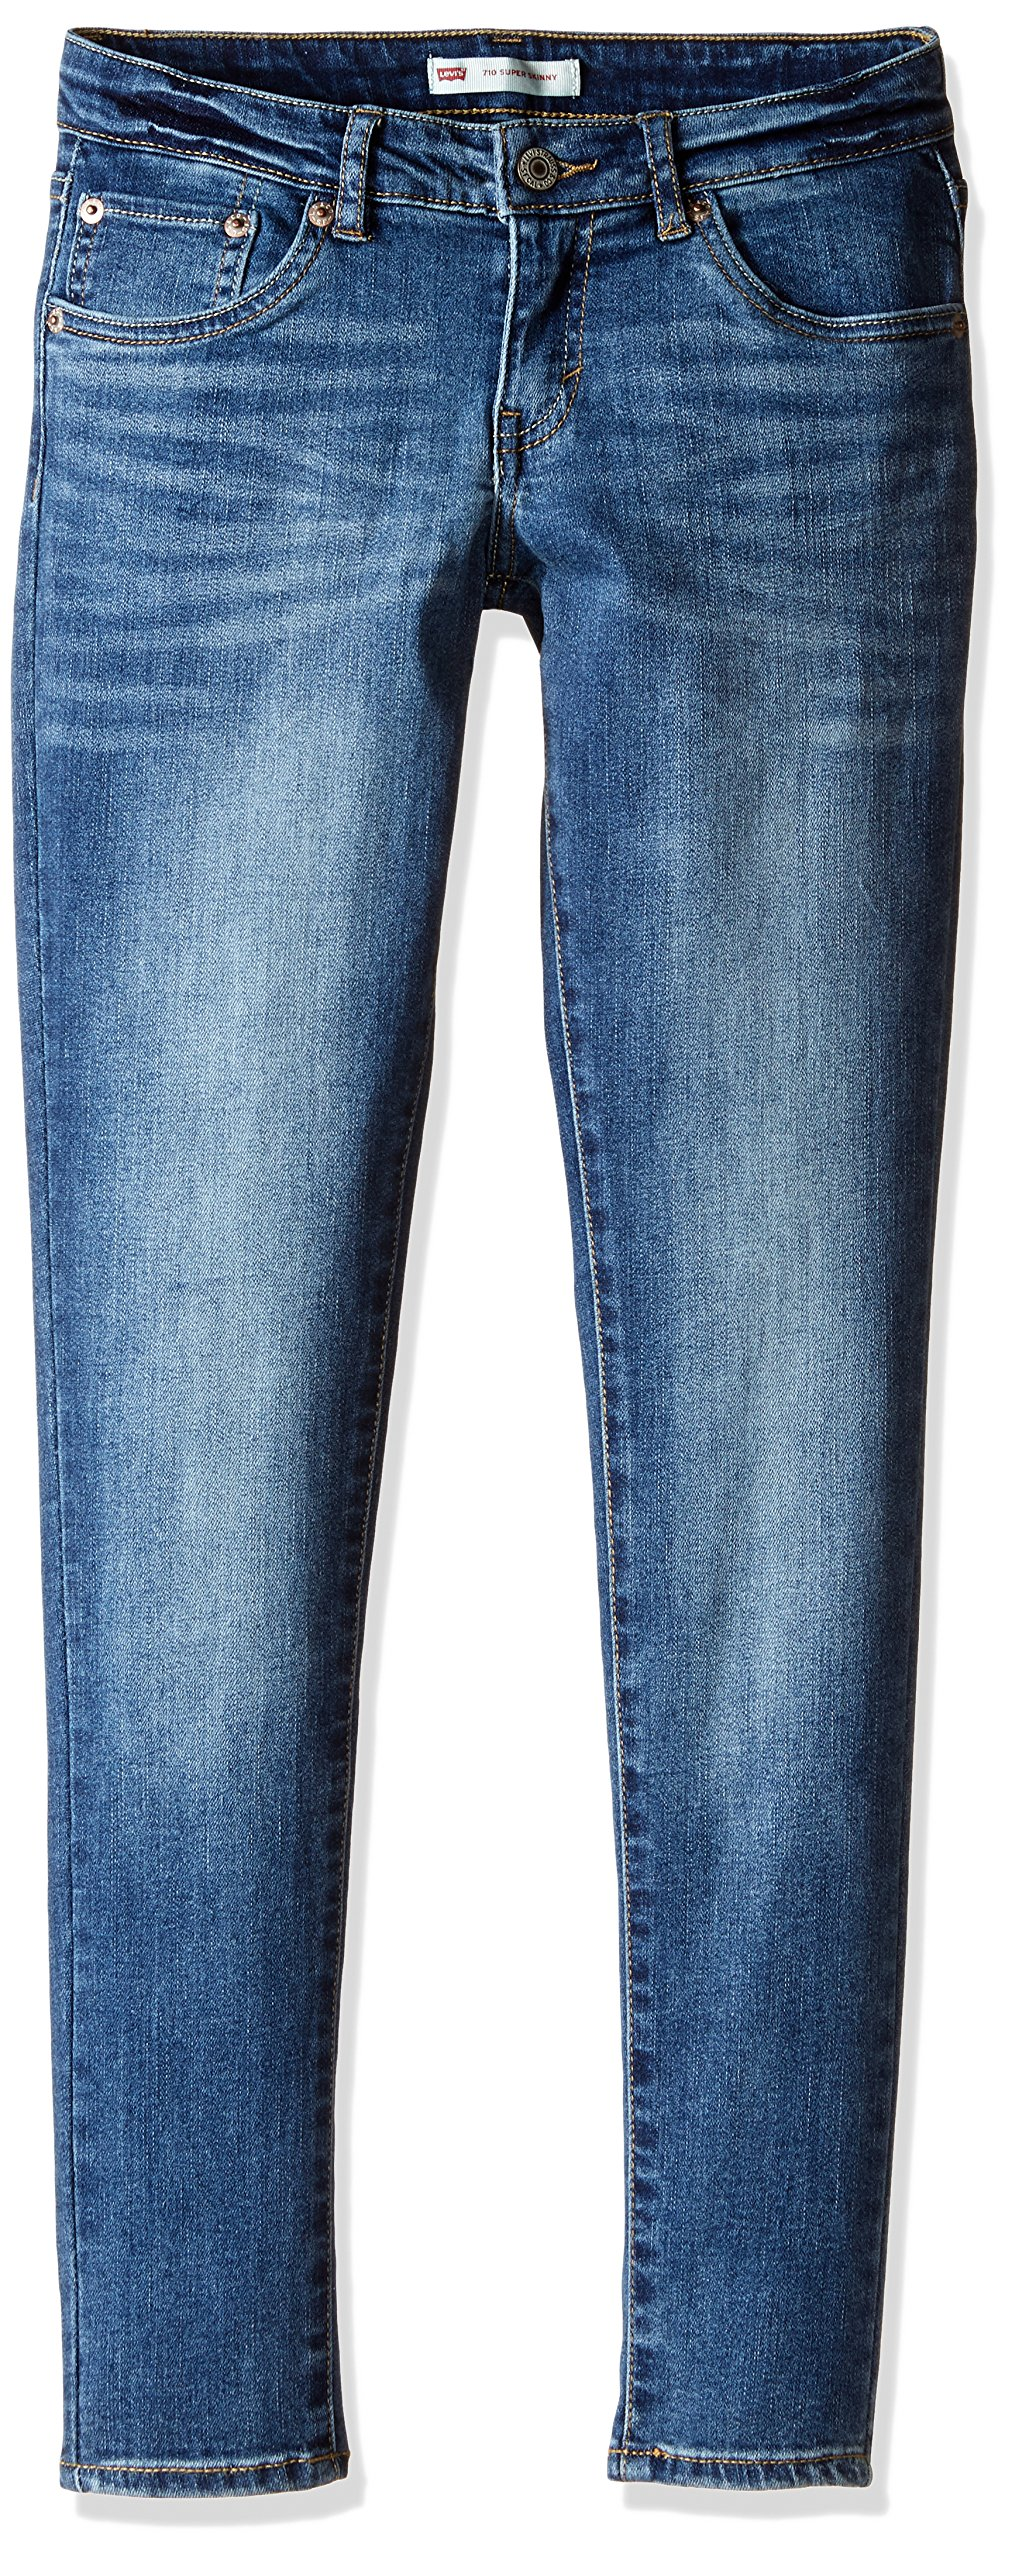 Levi's Big Girls' 710 Super Skinny Fit Classic Jeans, Wave, 12